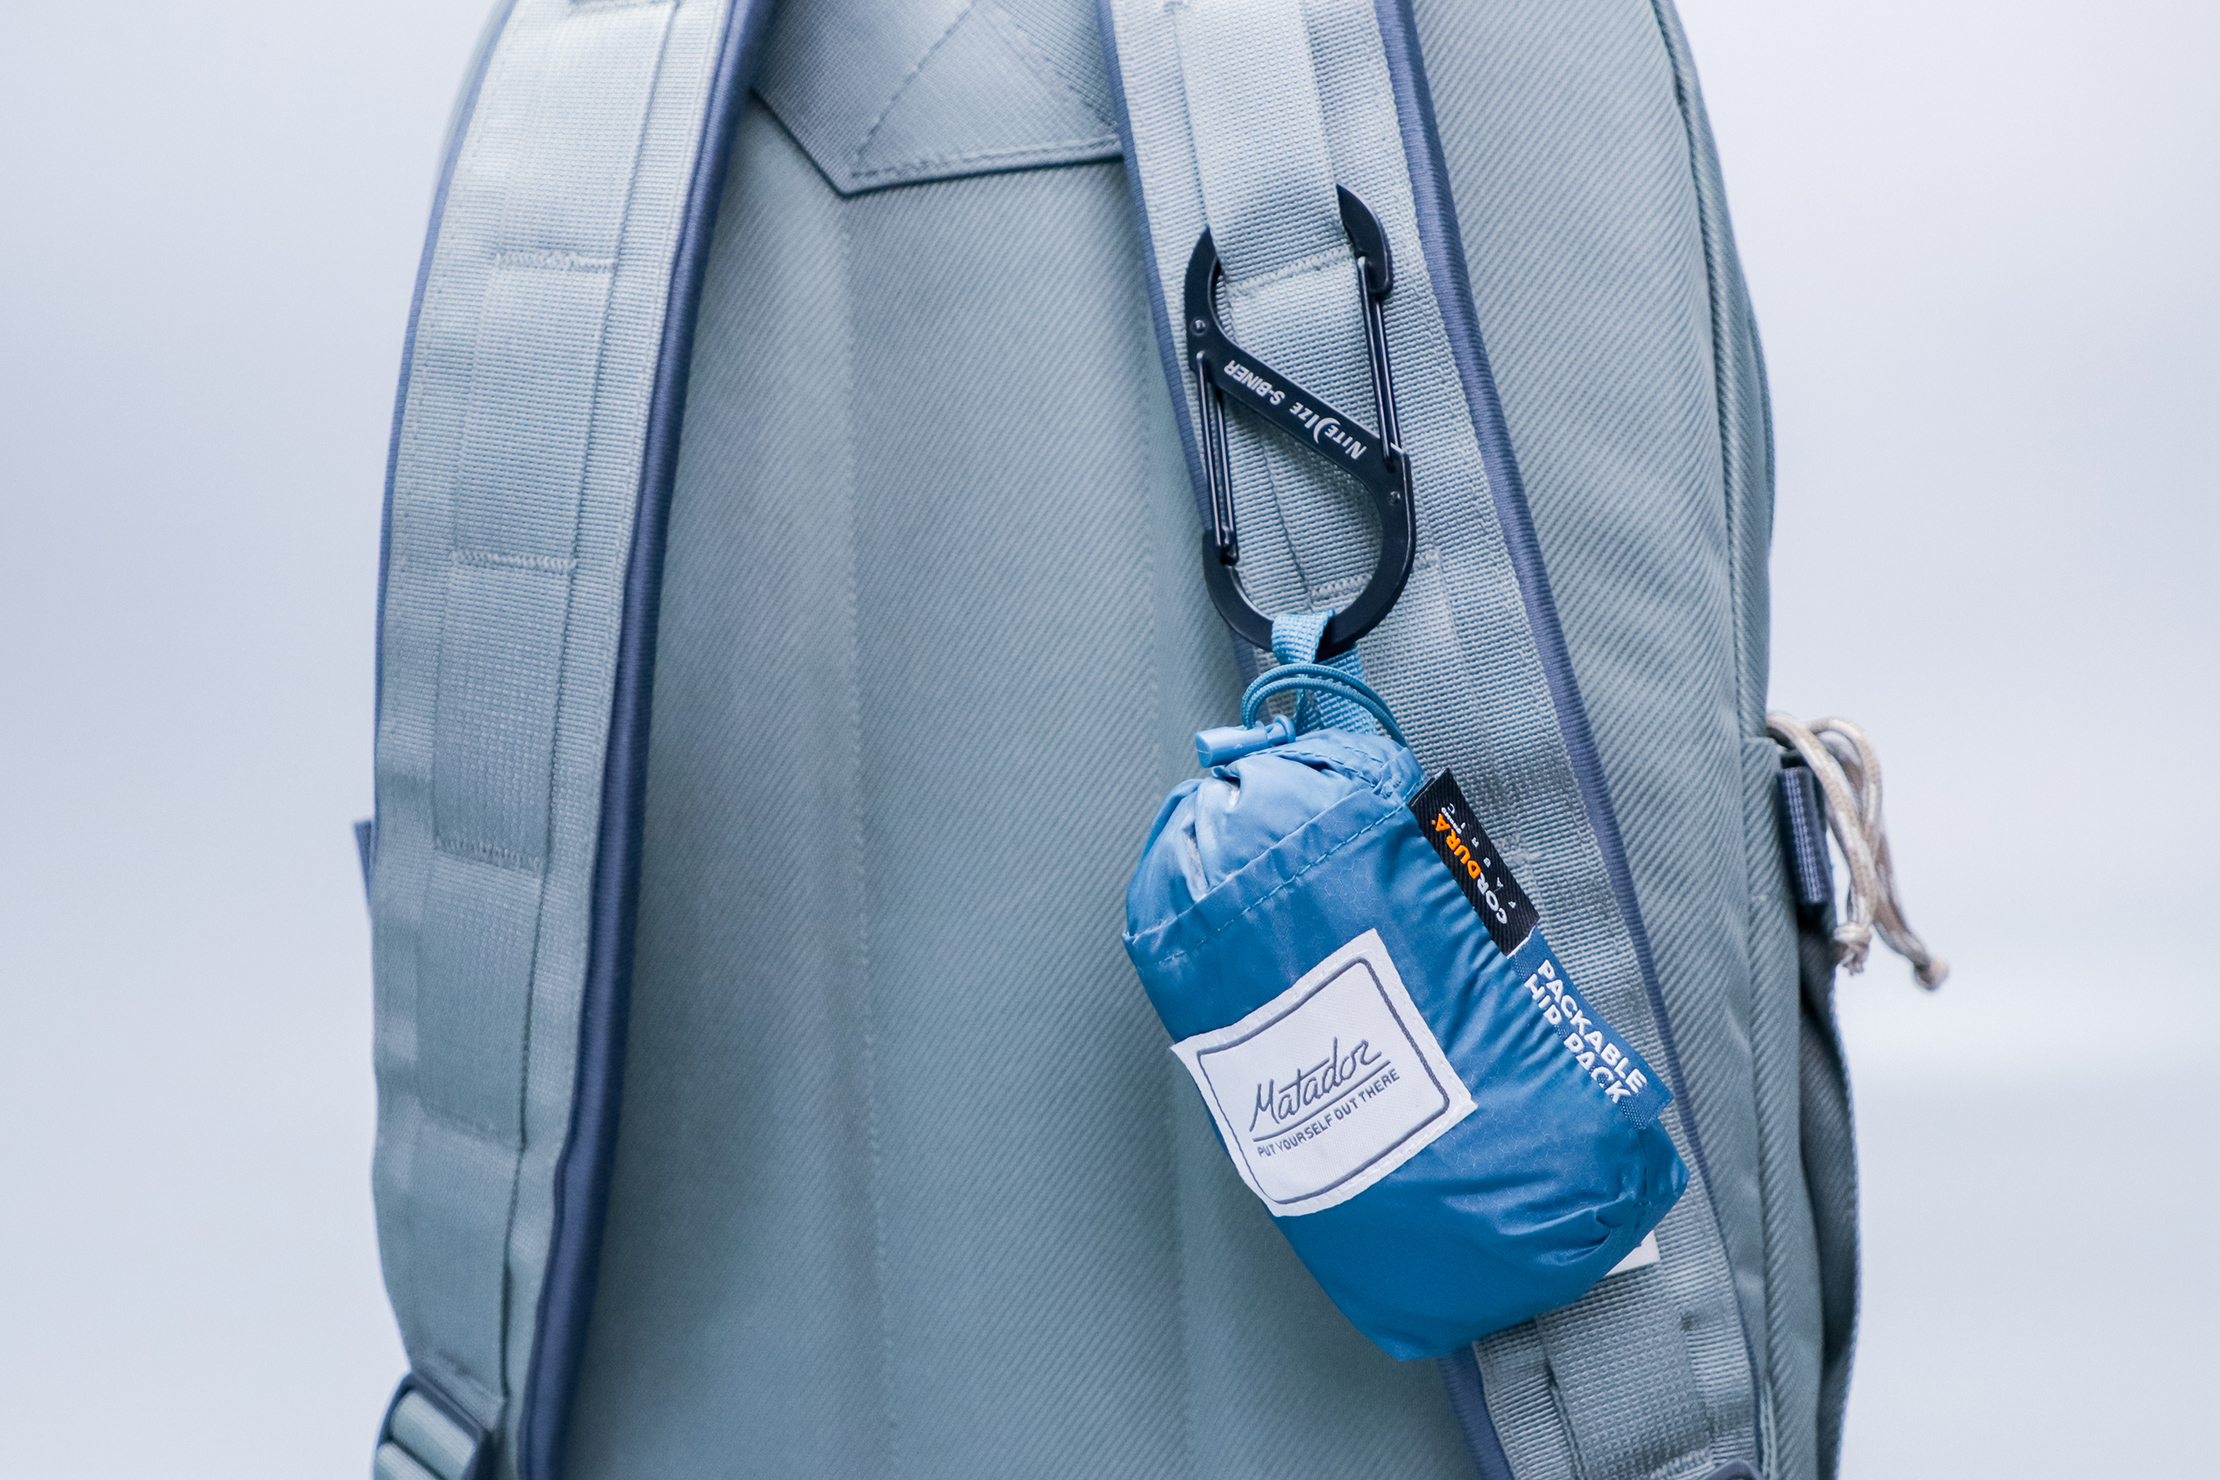 The North Face Daypack clipped to strap